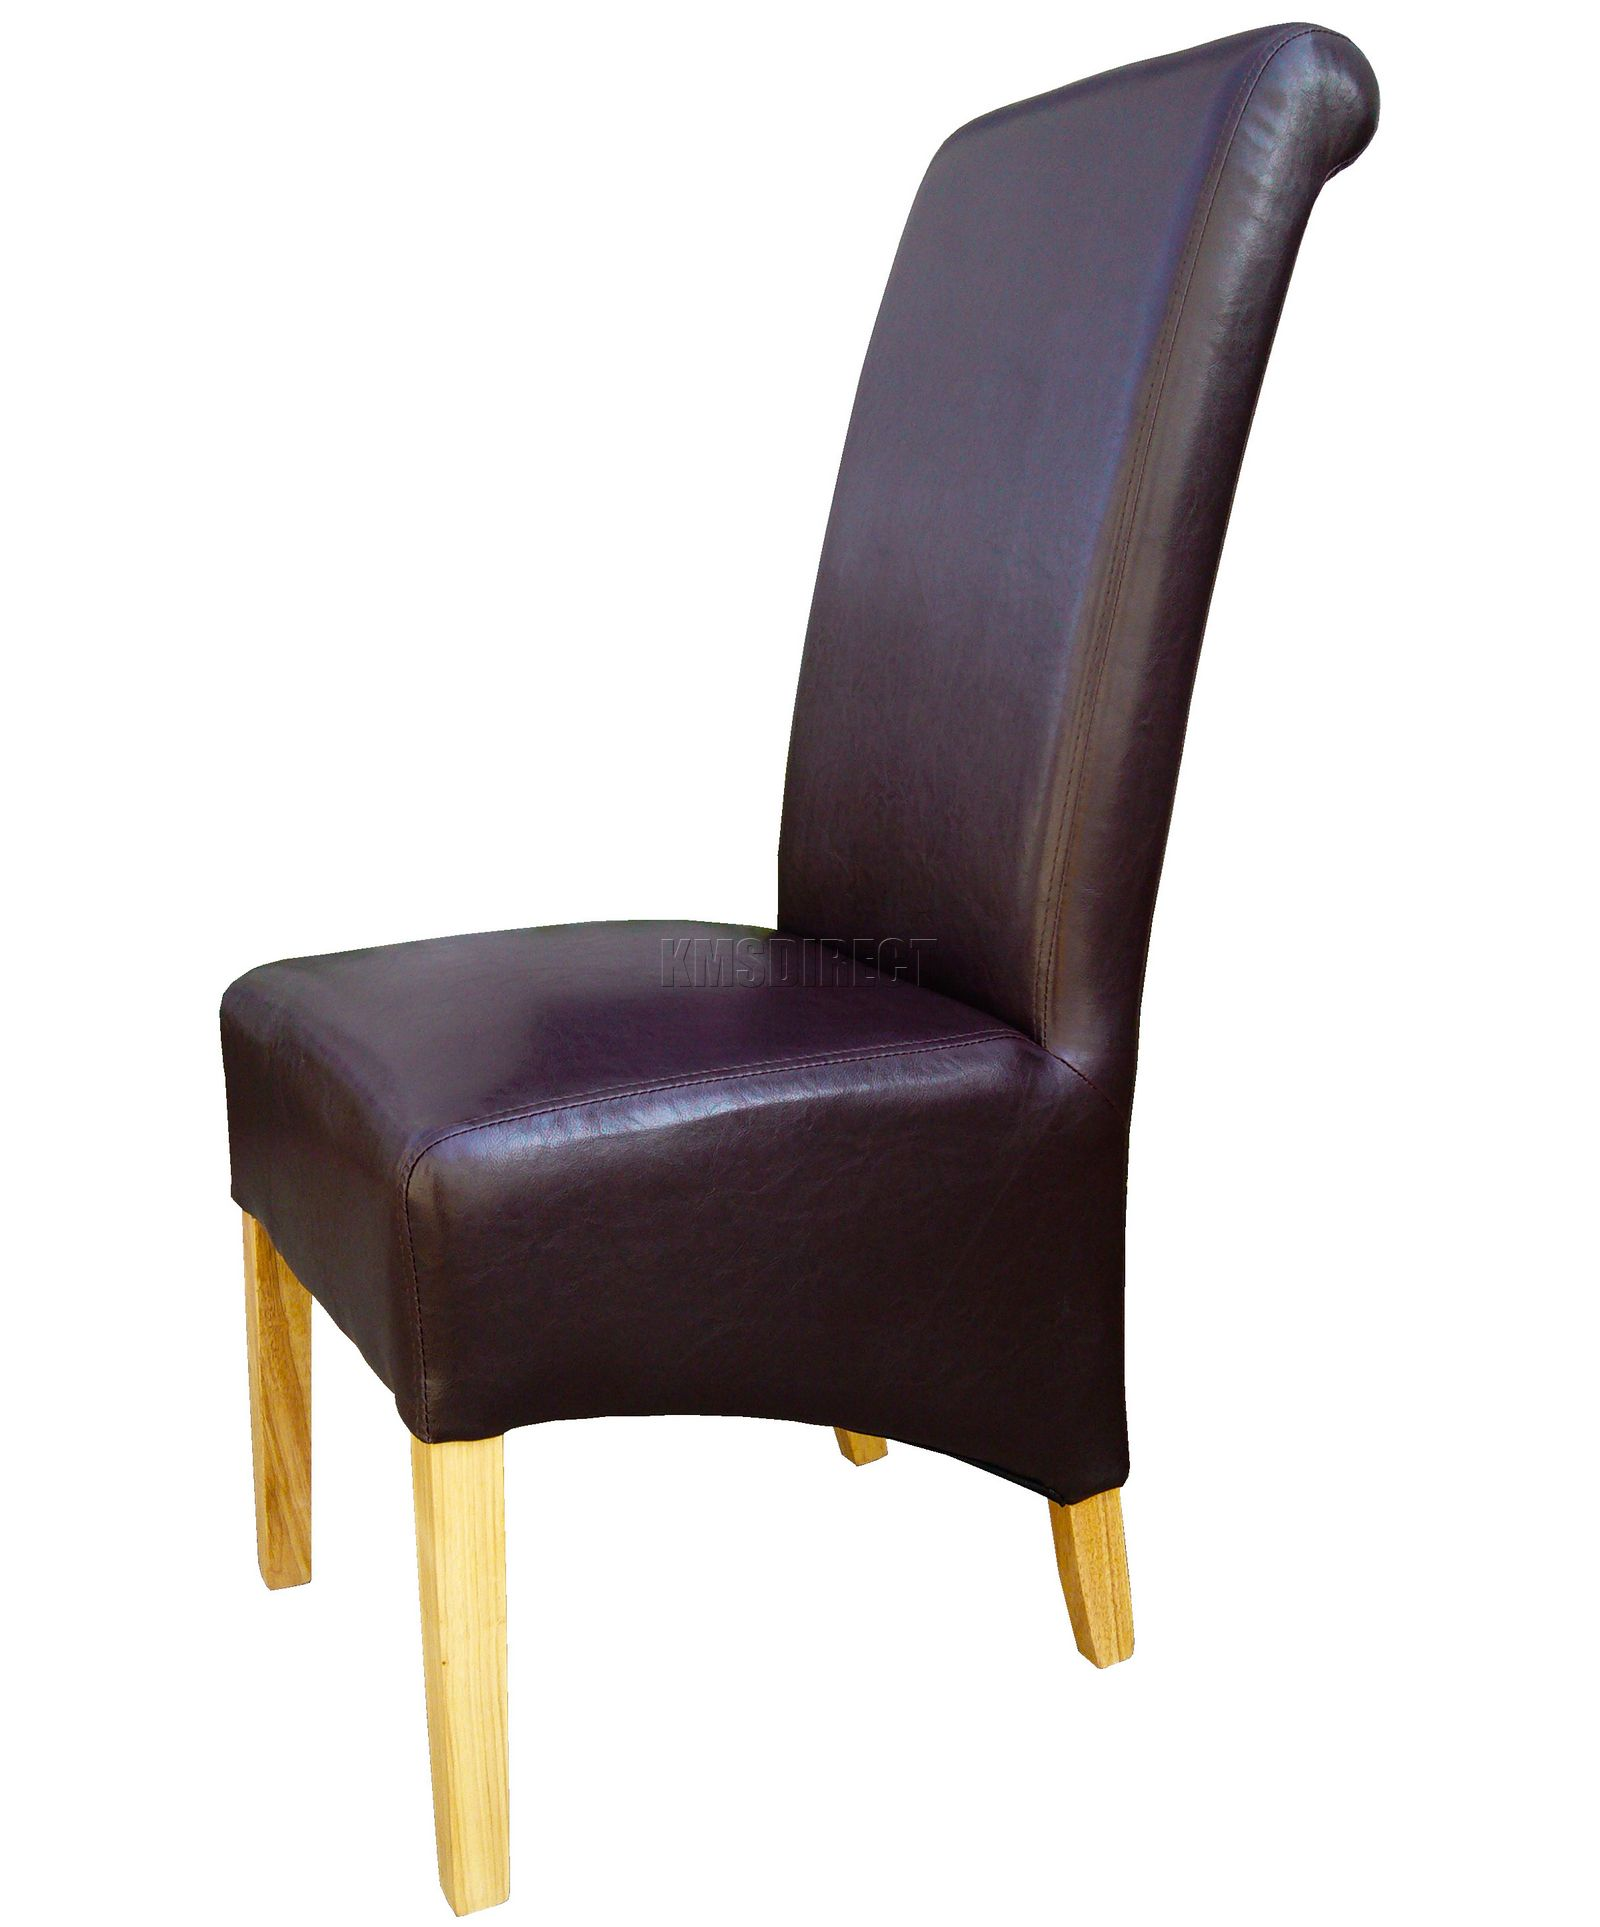 Brown Leather Dining Room Chairs: New Premium Dining Chairs Brown Faux Leather Roll Top